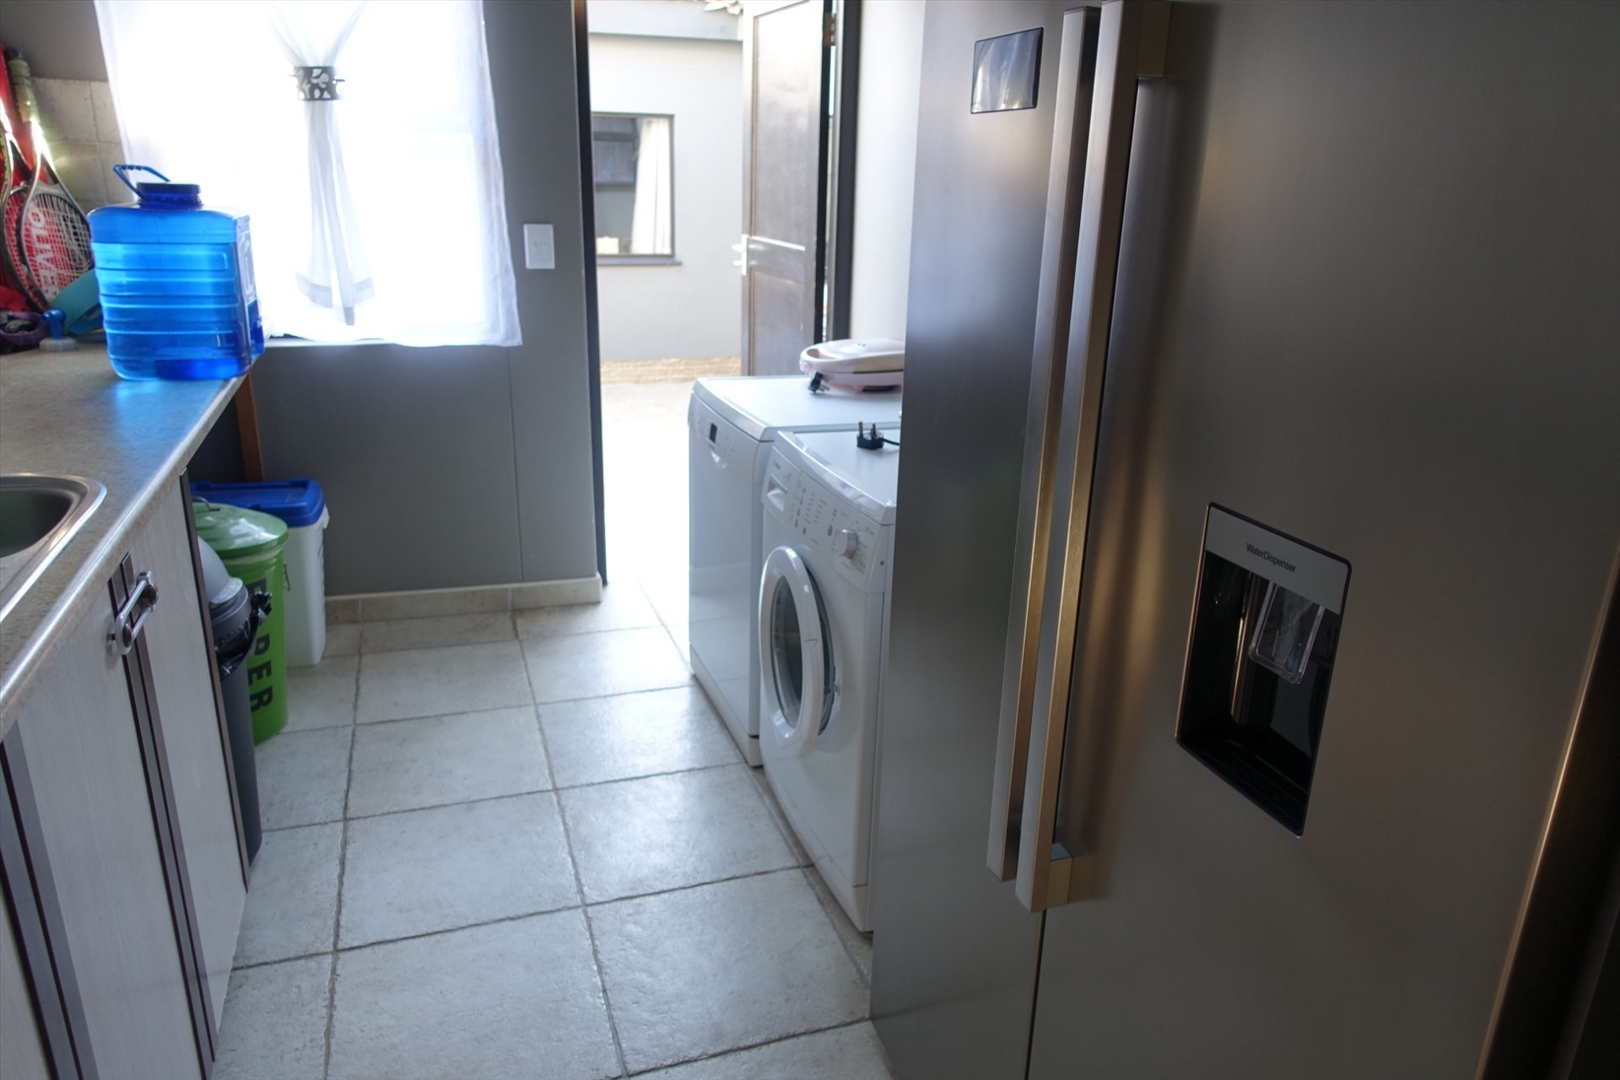 Scullery / laundry room